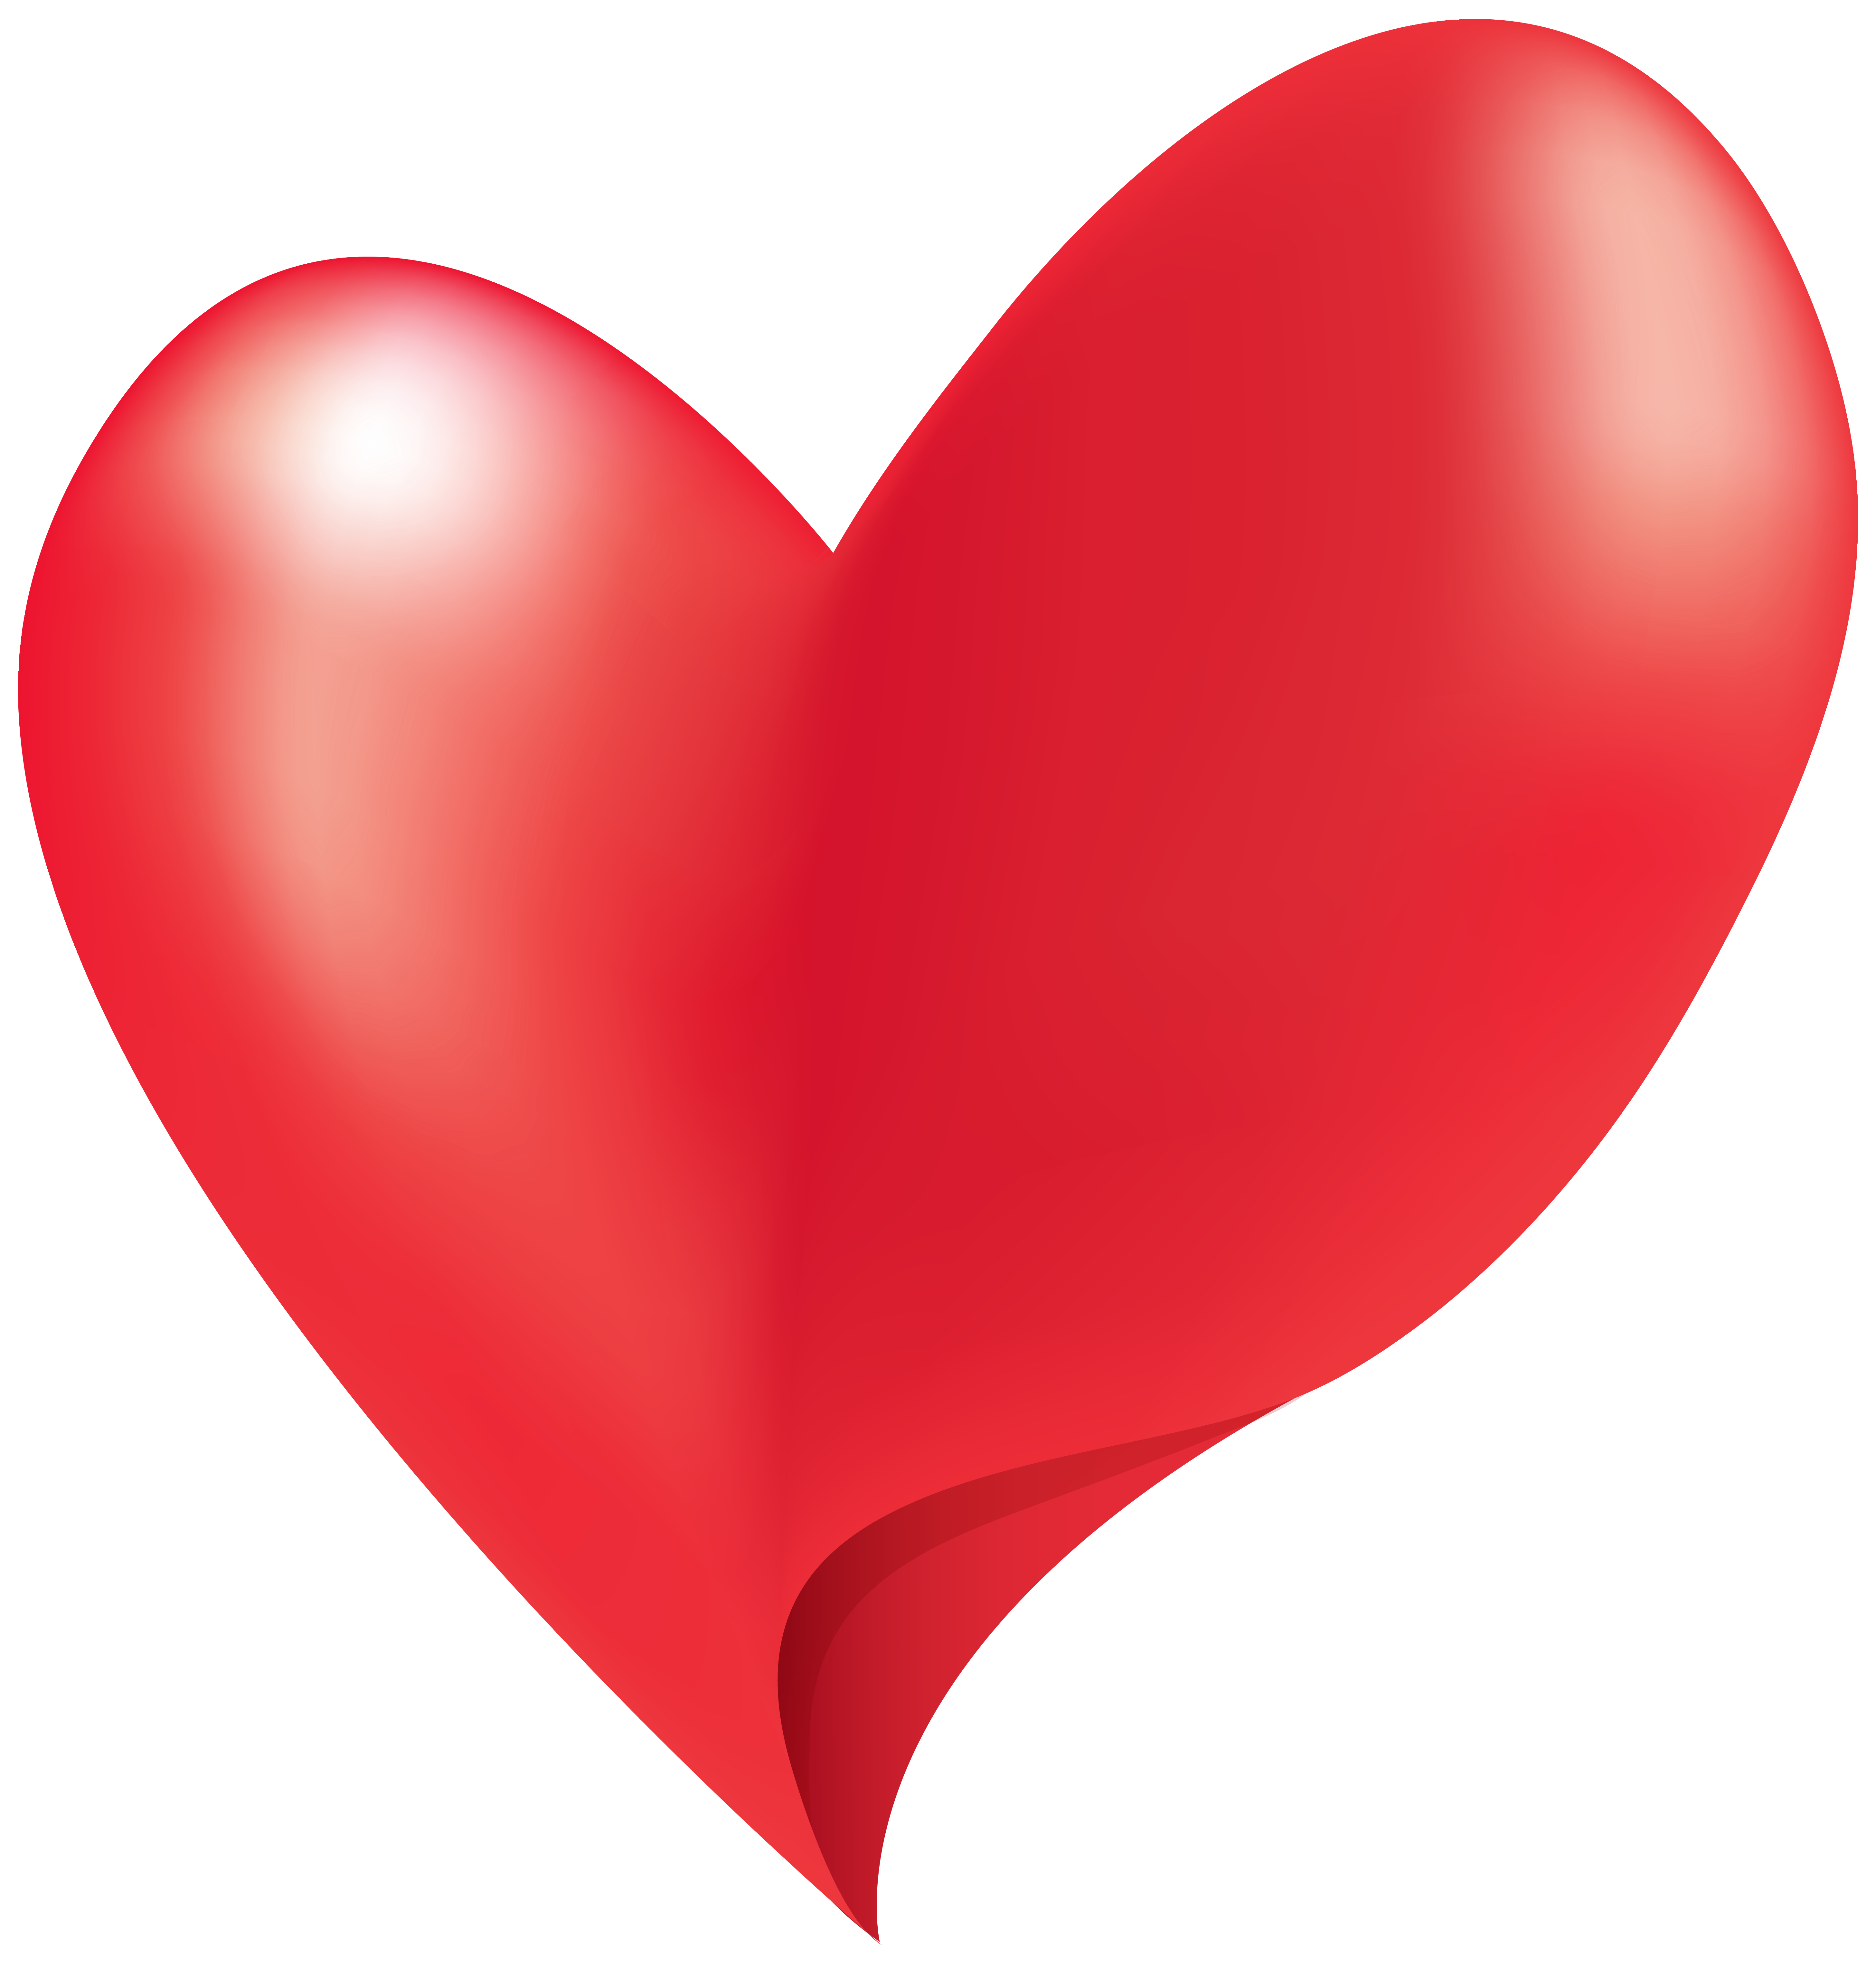 Small clipart heart picture royalty free Hearts On Fire Clipart at GetDrawings.com | Free for personal use ... picture royalty free